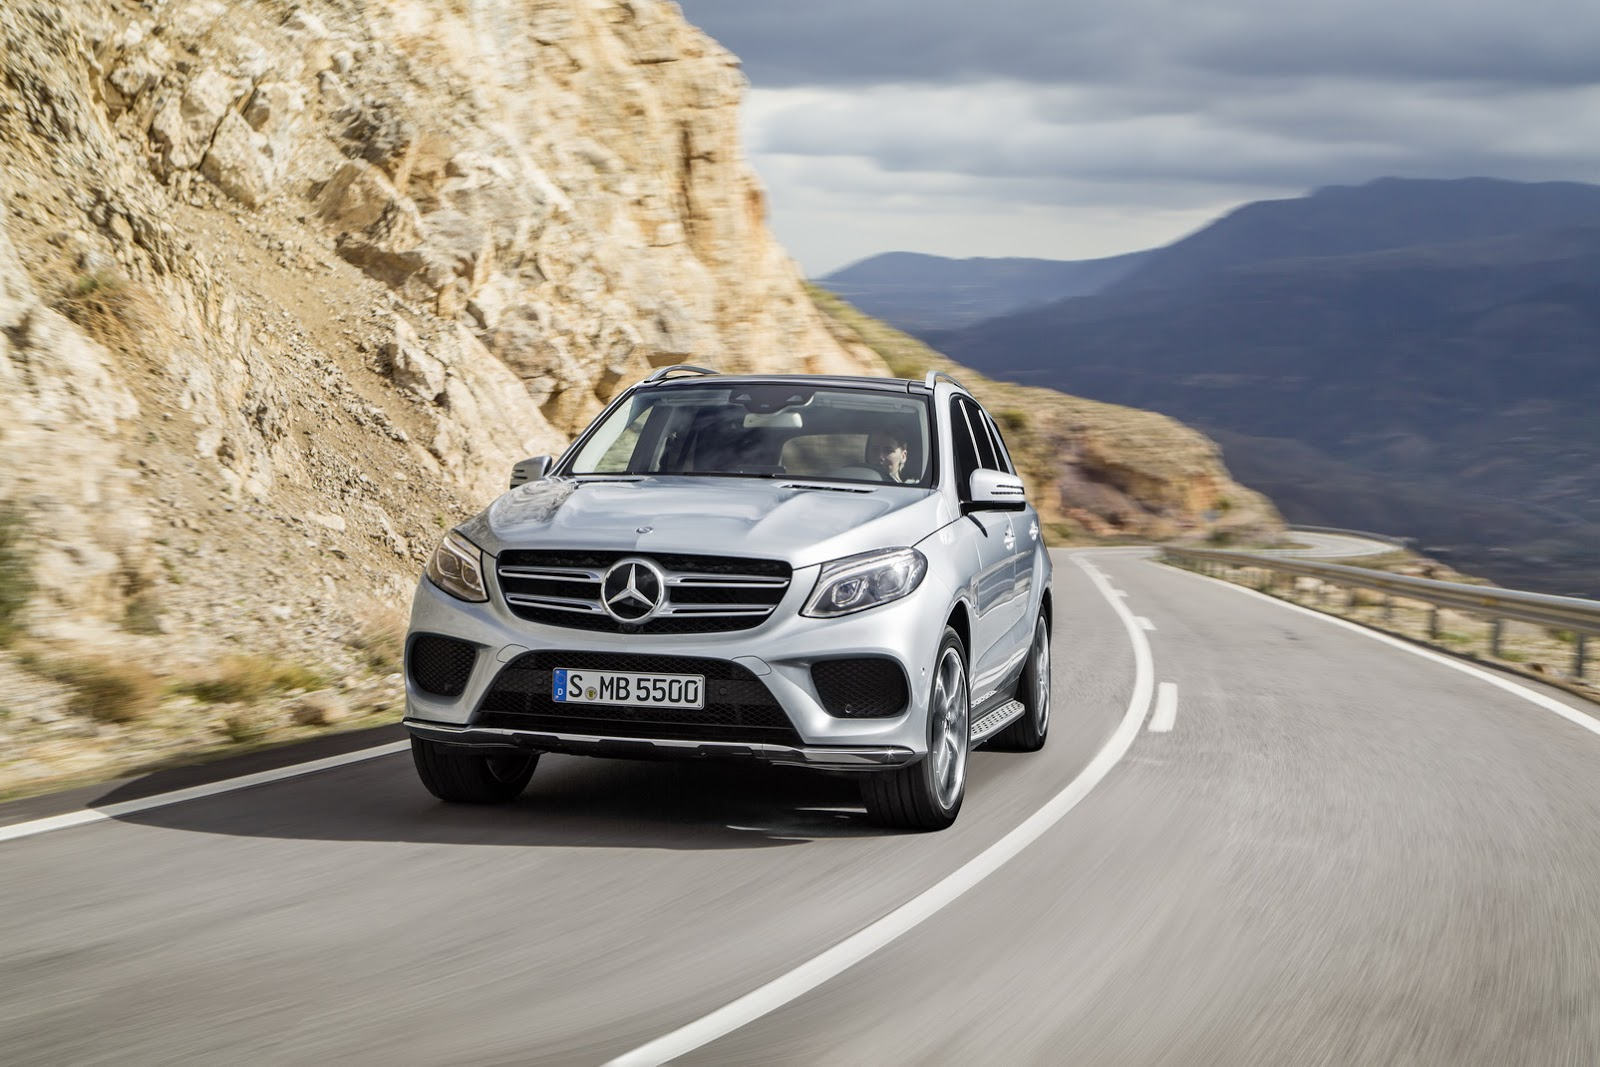 Mercedes benz gle suv photo gallery autocar india for Mercedes benz suv india